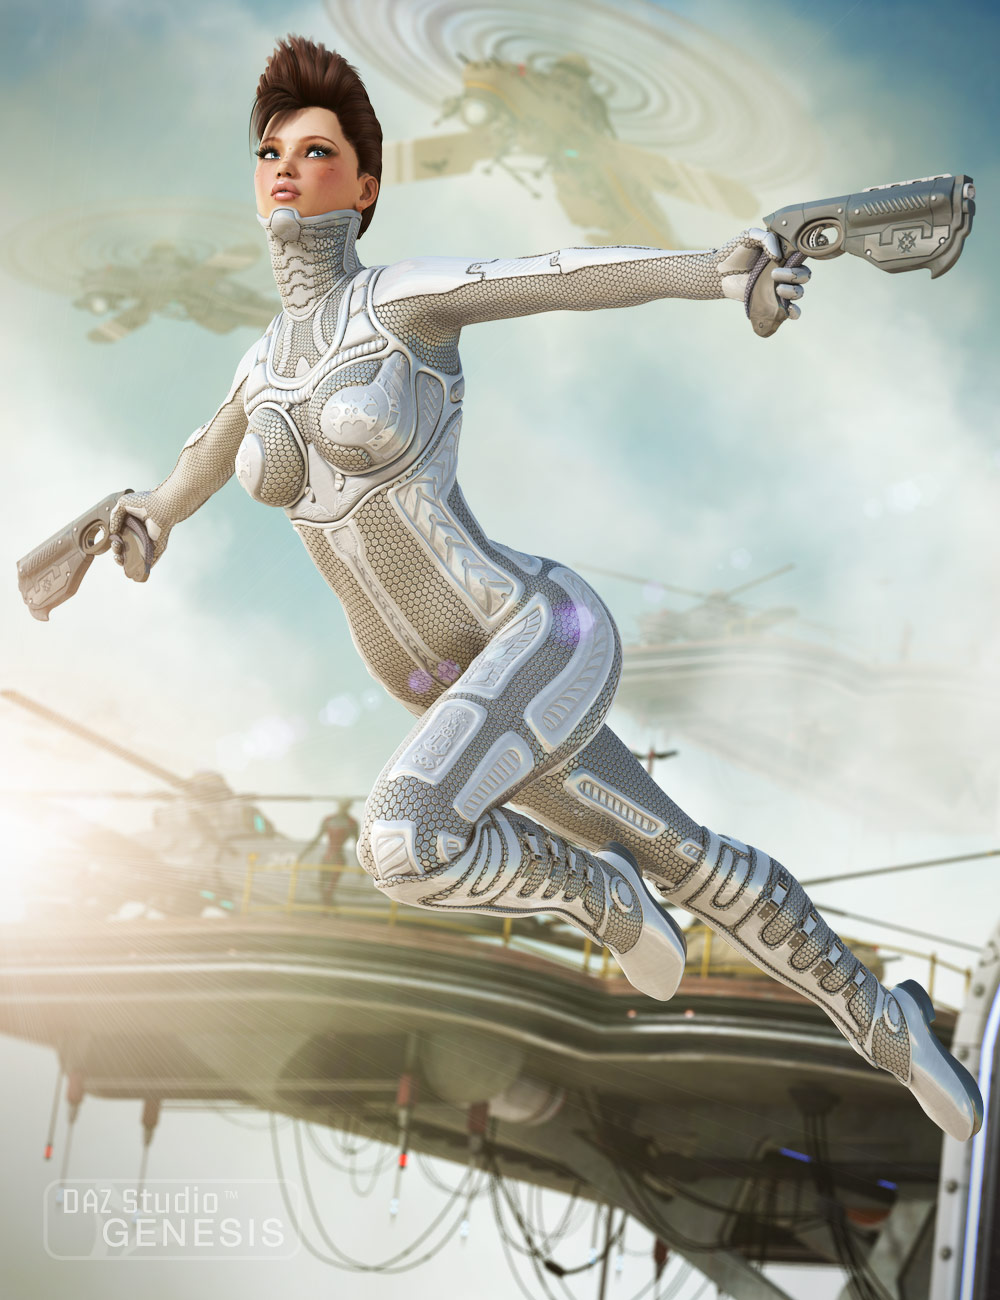 Sky Chaser by: midnight_stories, 3D Models by Daz 3D